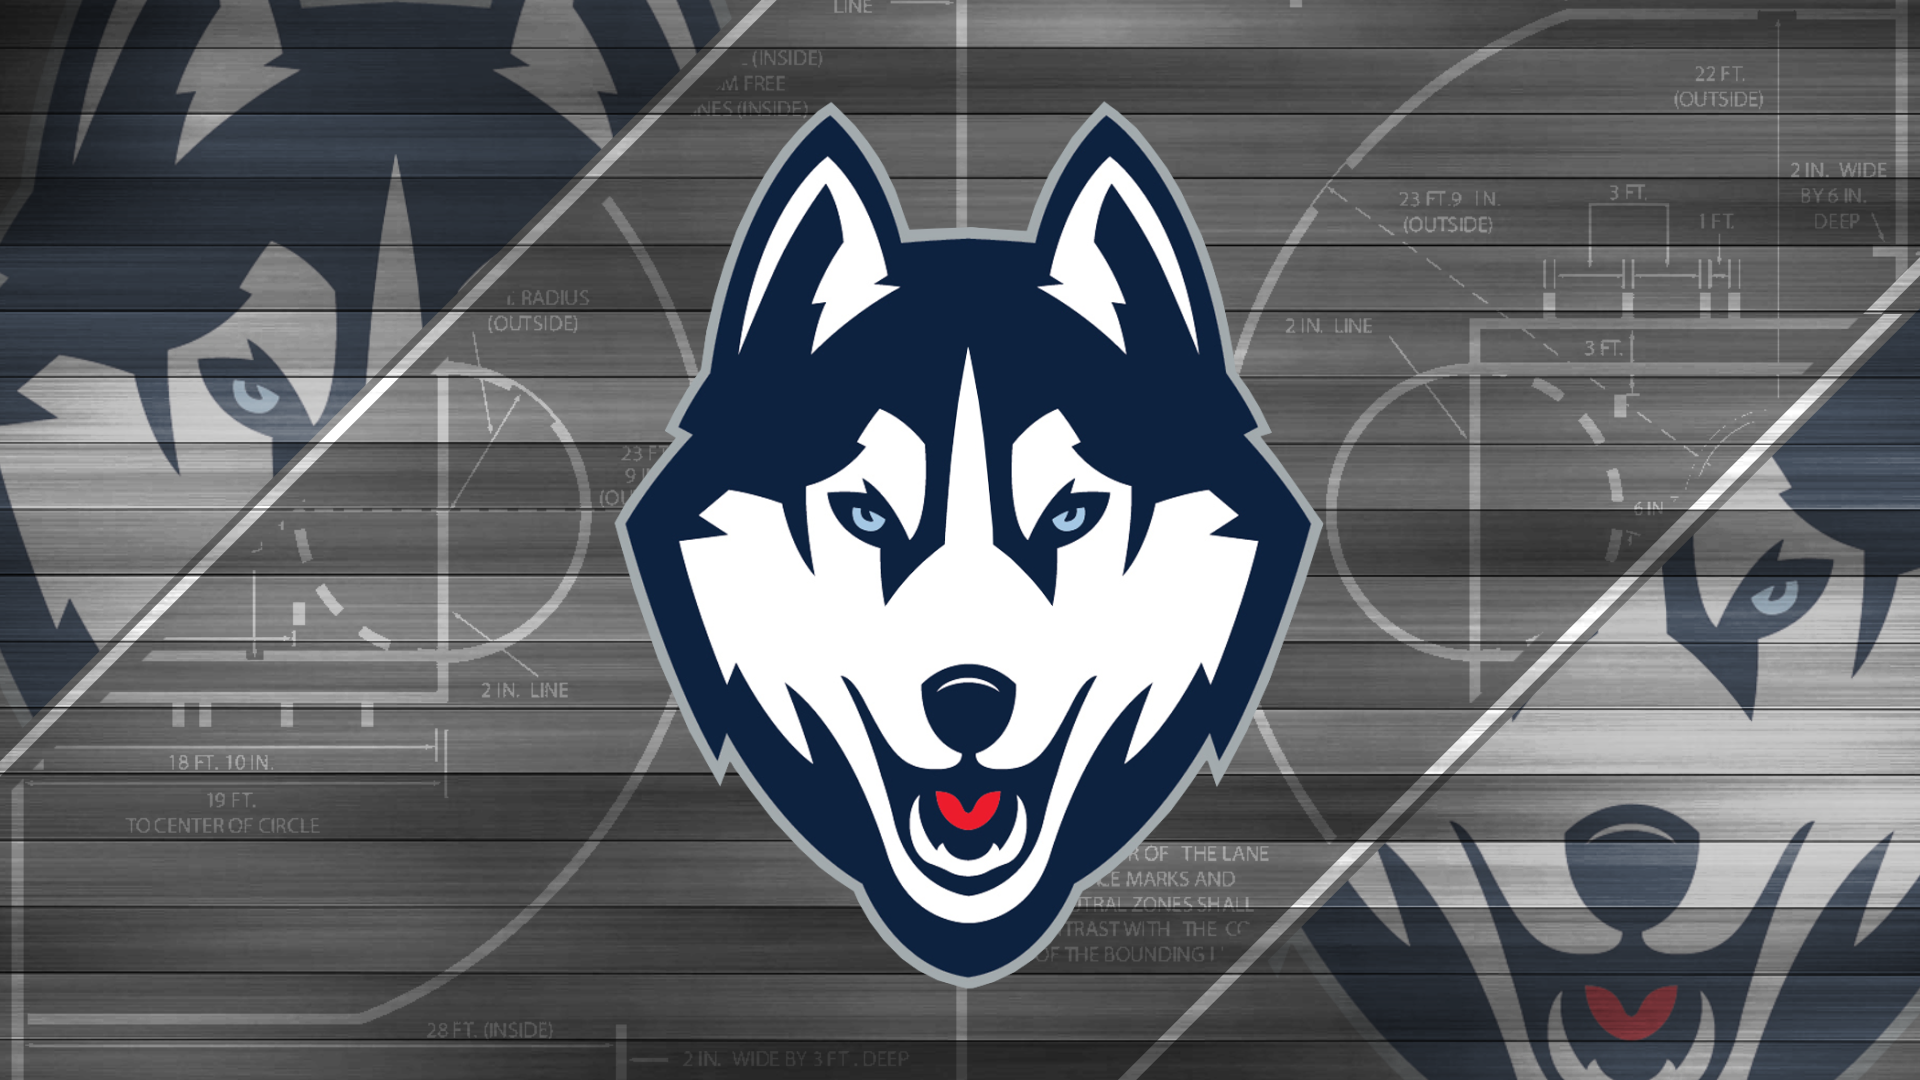 The UConn Huskies have made it to the NCAA Tournament. Here's a preview of the team and a prediction of how they'll do during March Madness.